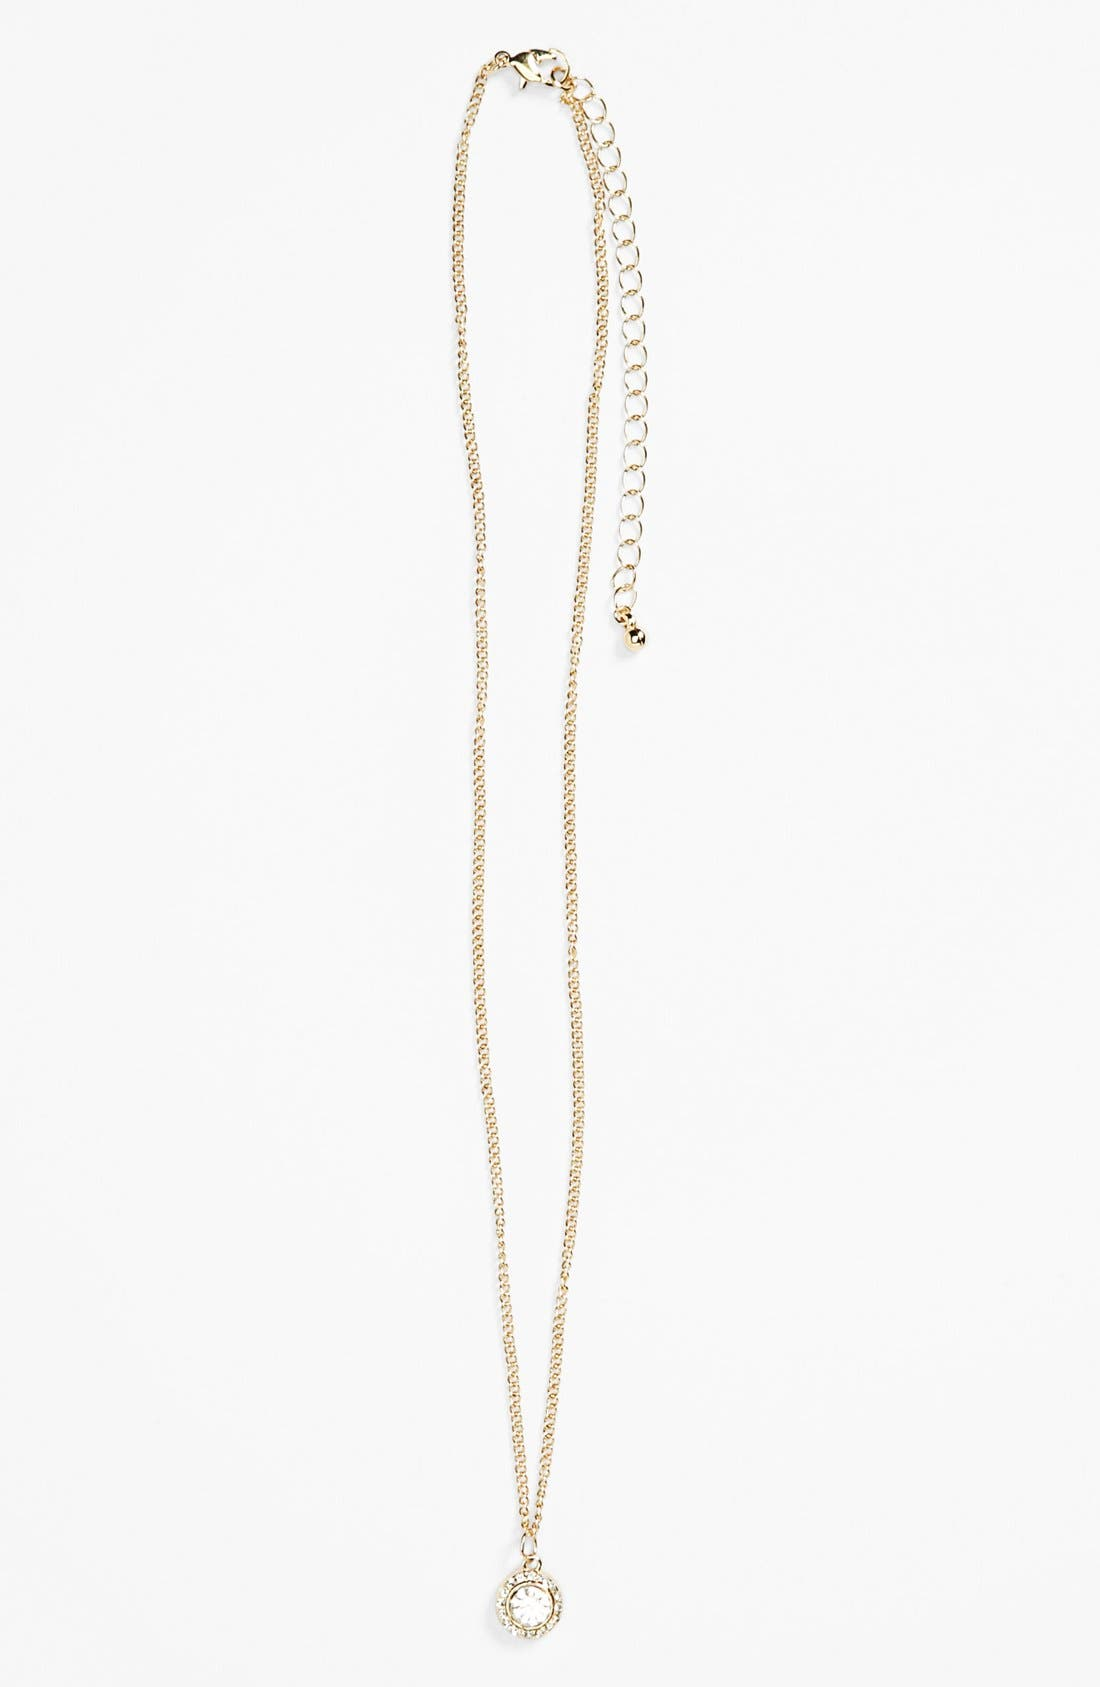 Alternate Image 1 Selected - Stephan & Co. Stone Charm Necklace (Juniors) (Online Only)